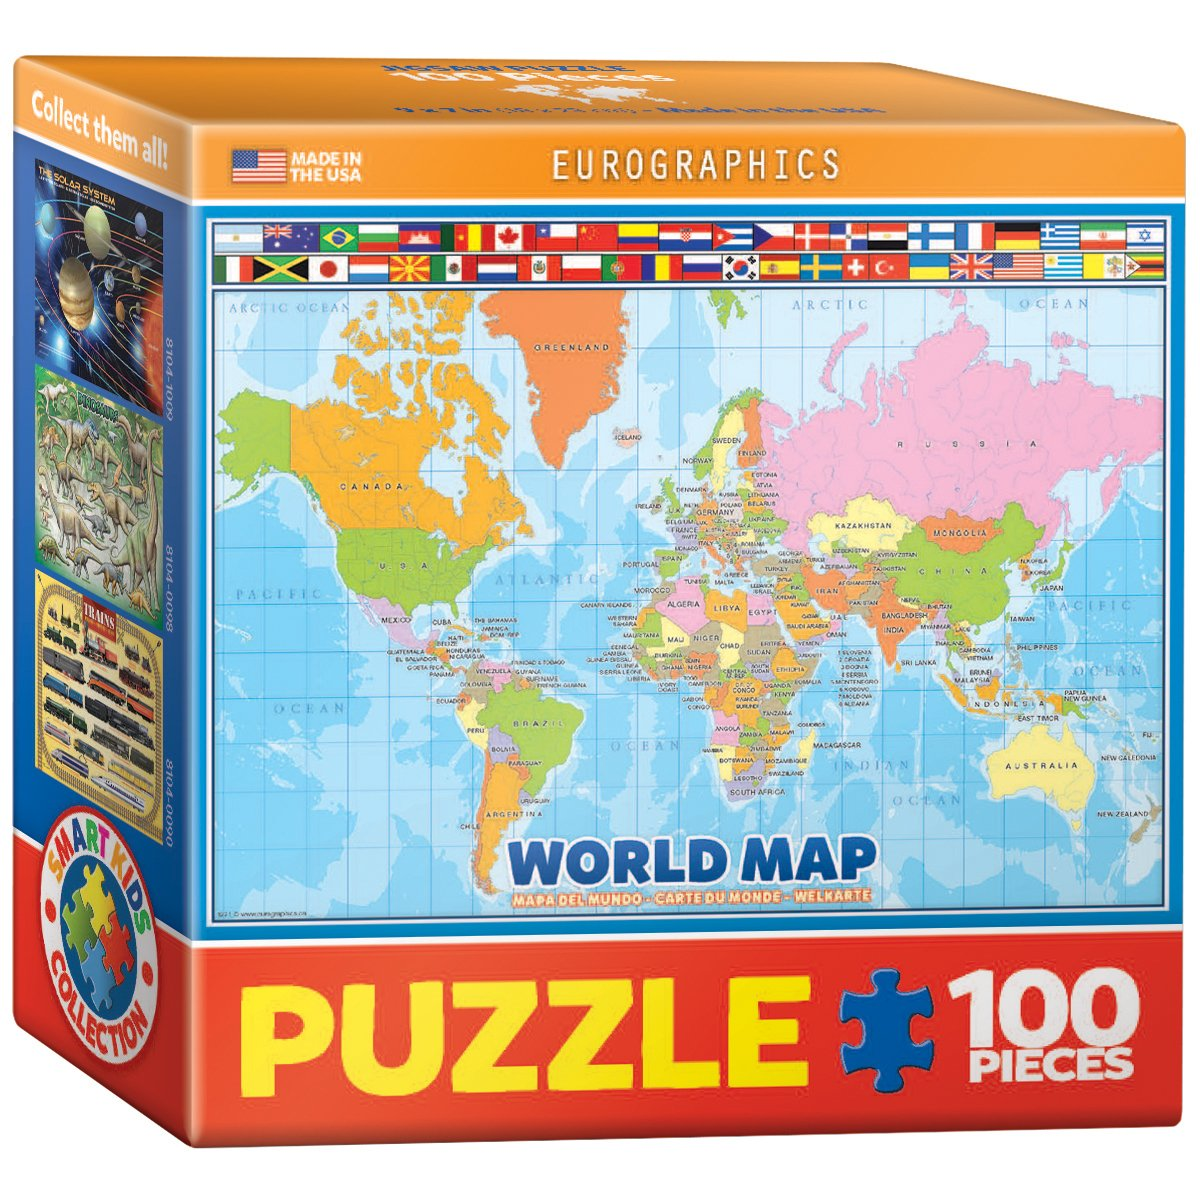 Eurographics world map for kids mini jigsaw puzzle 100 piece free main image gumiabroncs Gallery